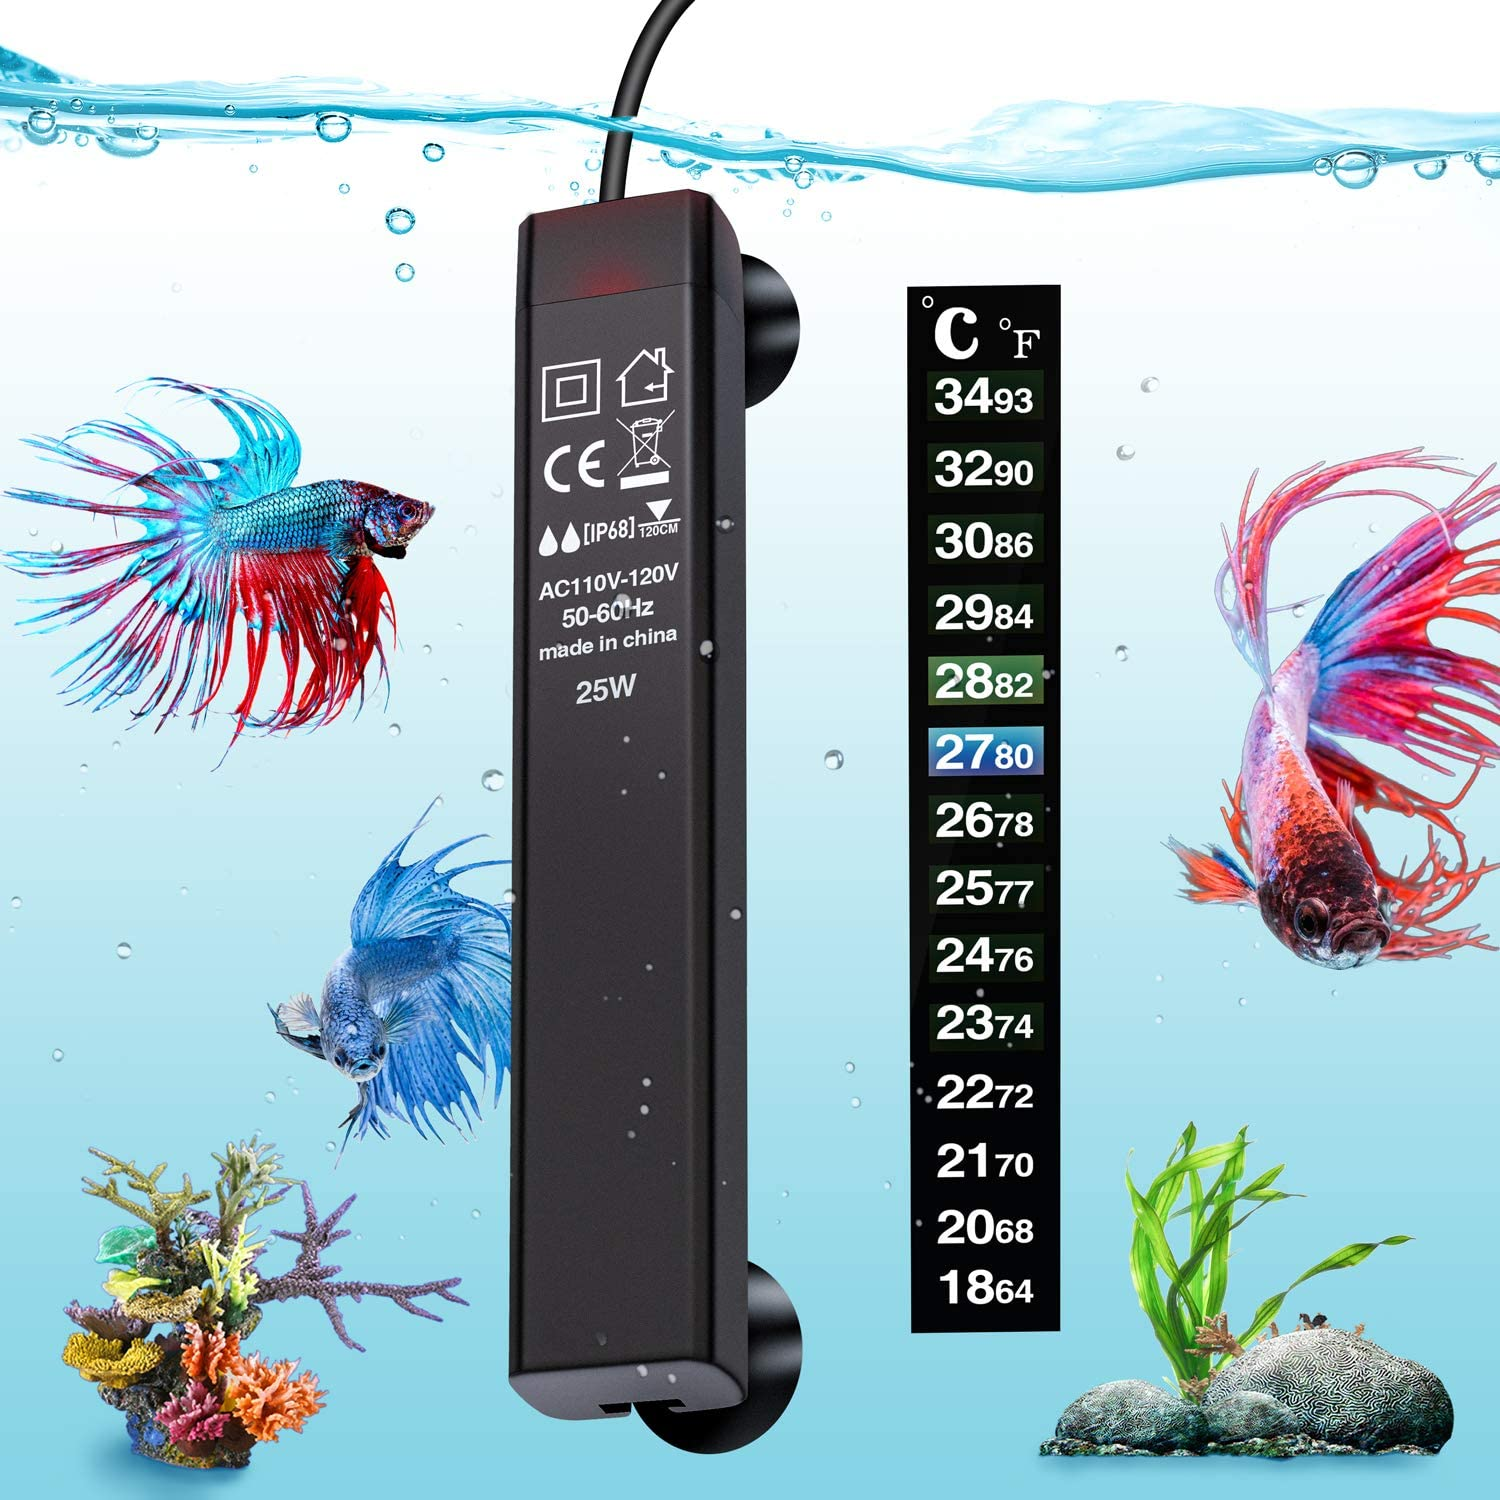 VIBIRIT Aquarium Heater,Betta Fish Tank Heater 25W/50W/100W/200W/300W Smart Aquarium Heater,Energy Efficient Submersible Thermostat + Thermometer Sticker